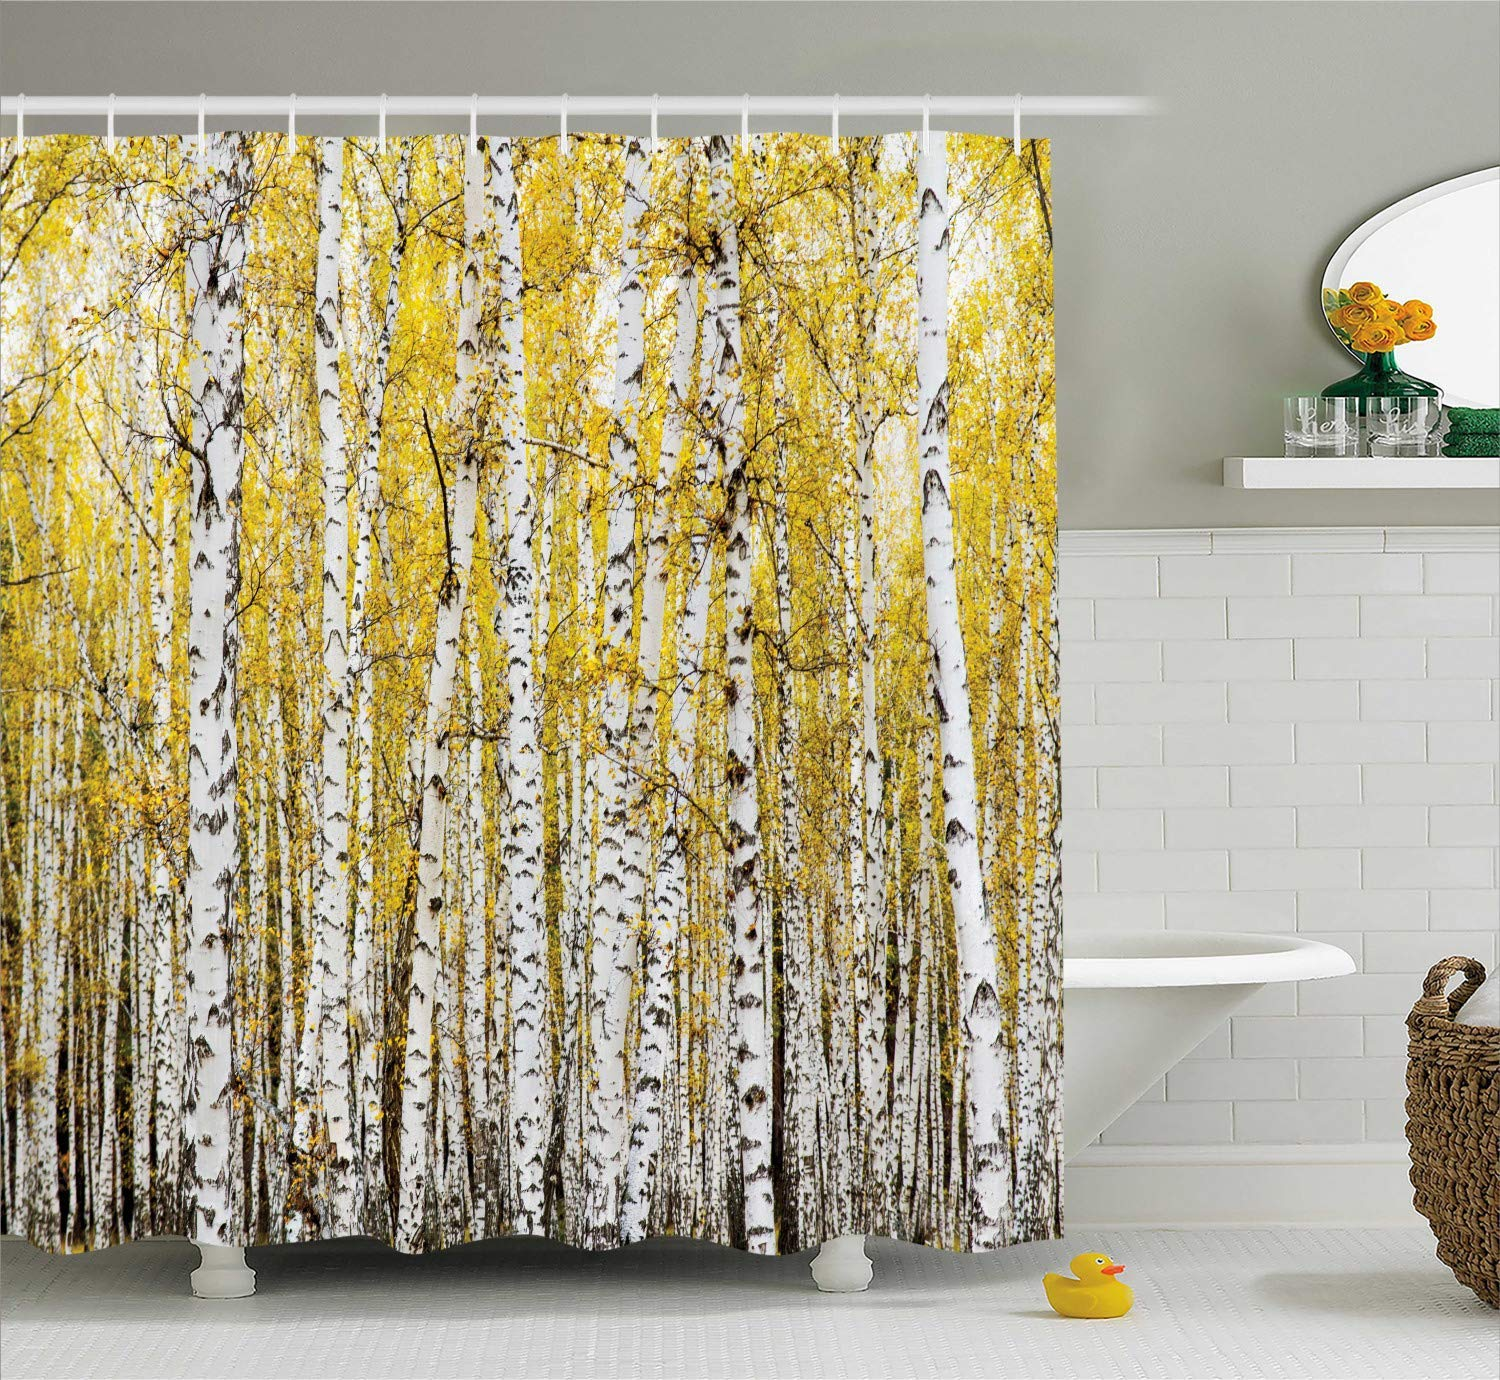 Printing Farm House Decor Shower Curtain Set, Autumn Birch Forest Golden Leaves Woodland October Seasonal Nature Picture, PVC Free, Non-Toxic and Odorless Water Repellent Fabric, 72 x 84 Inches